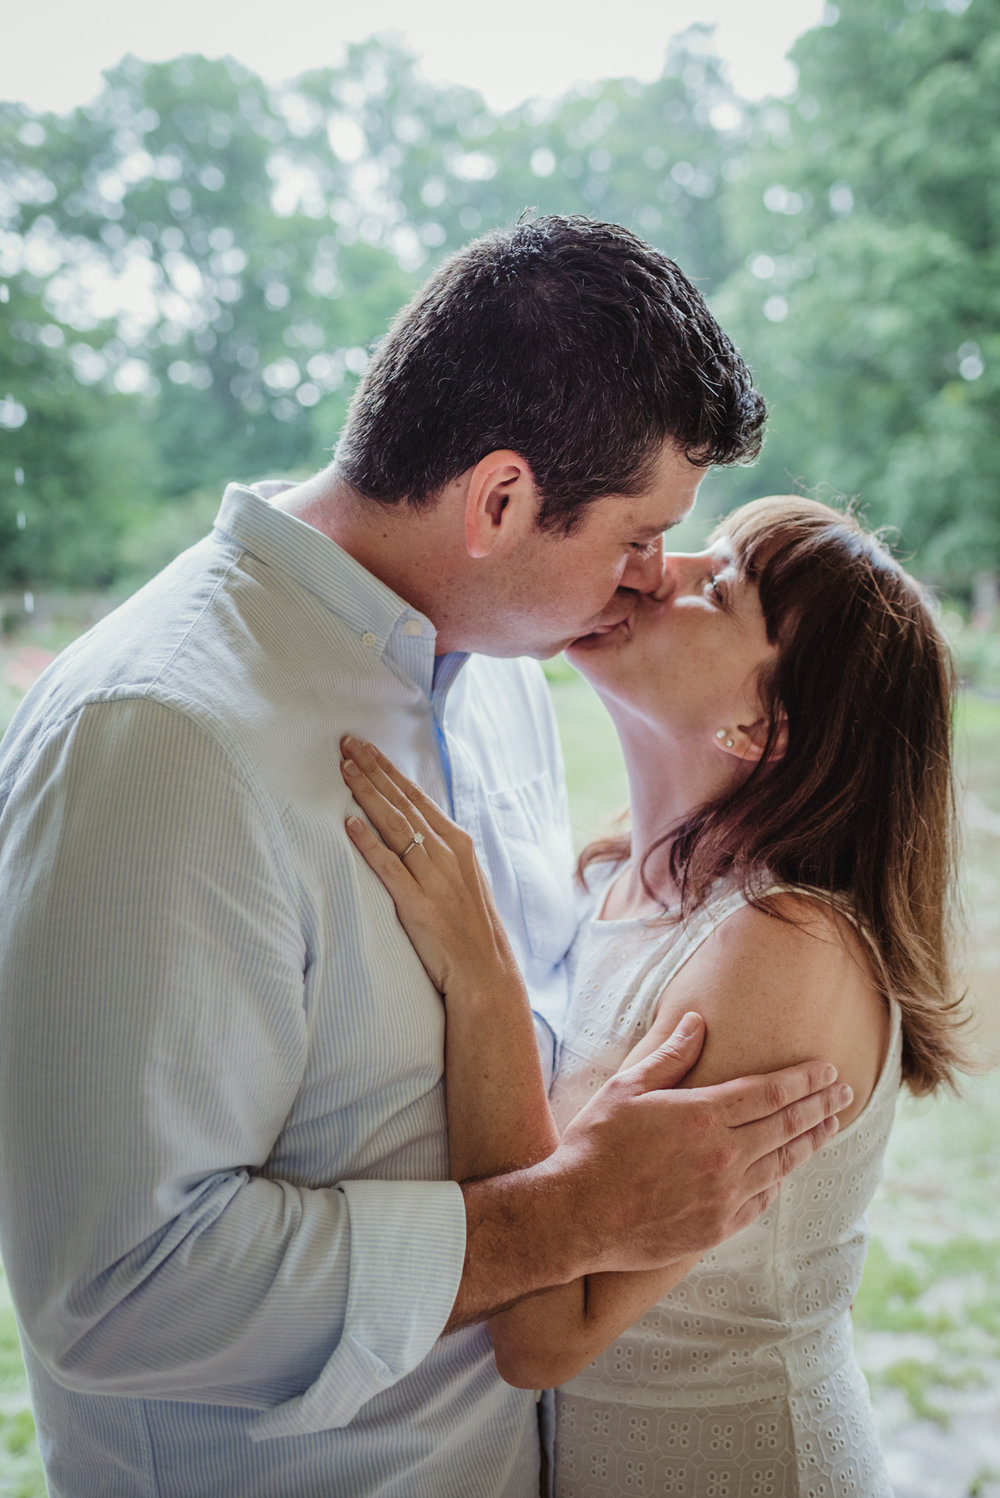 The bride and groom to be kiss each other in the shelter during the rainstorm in Raleigh, during their engagement session with Rose Trail Images.